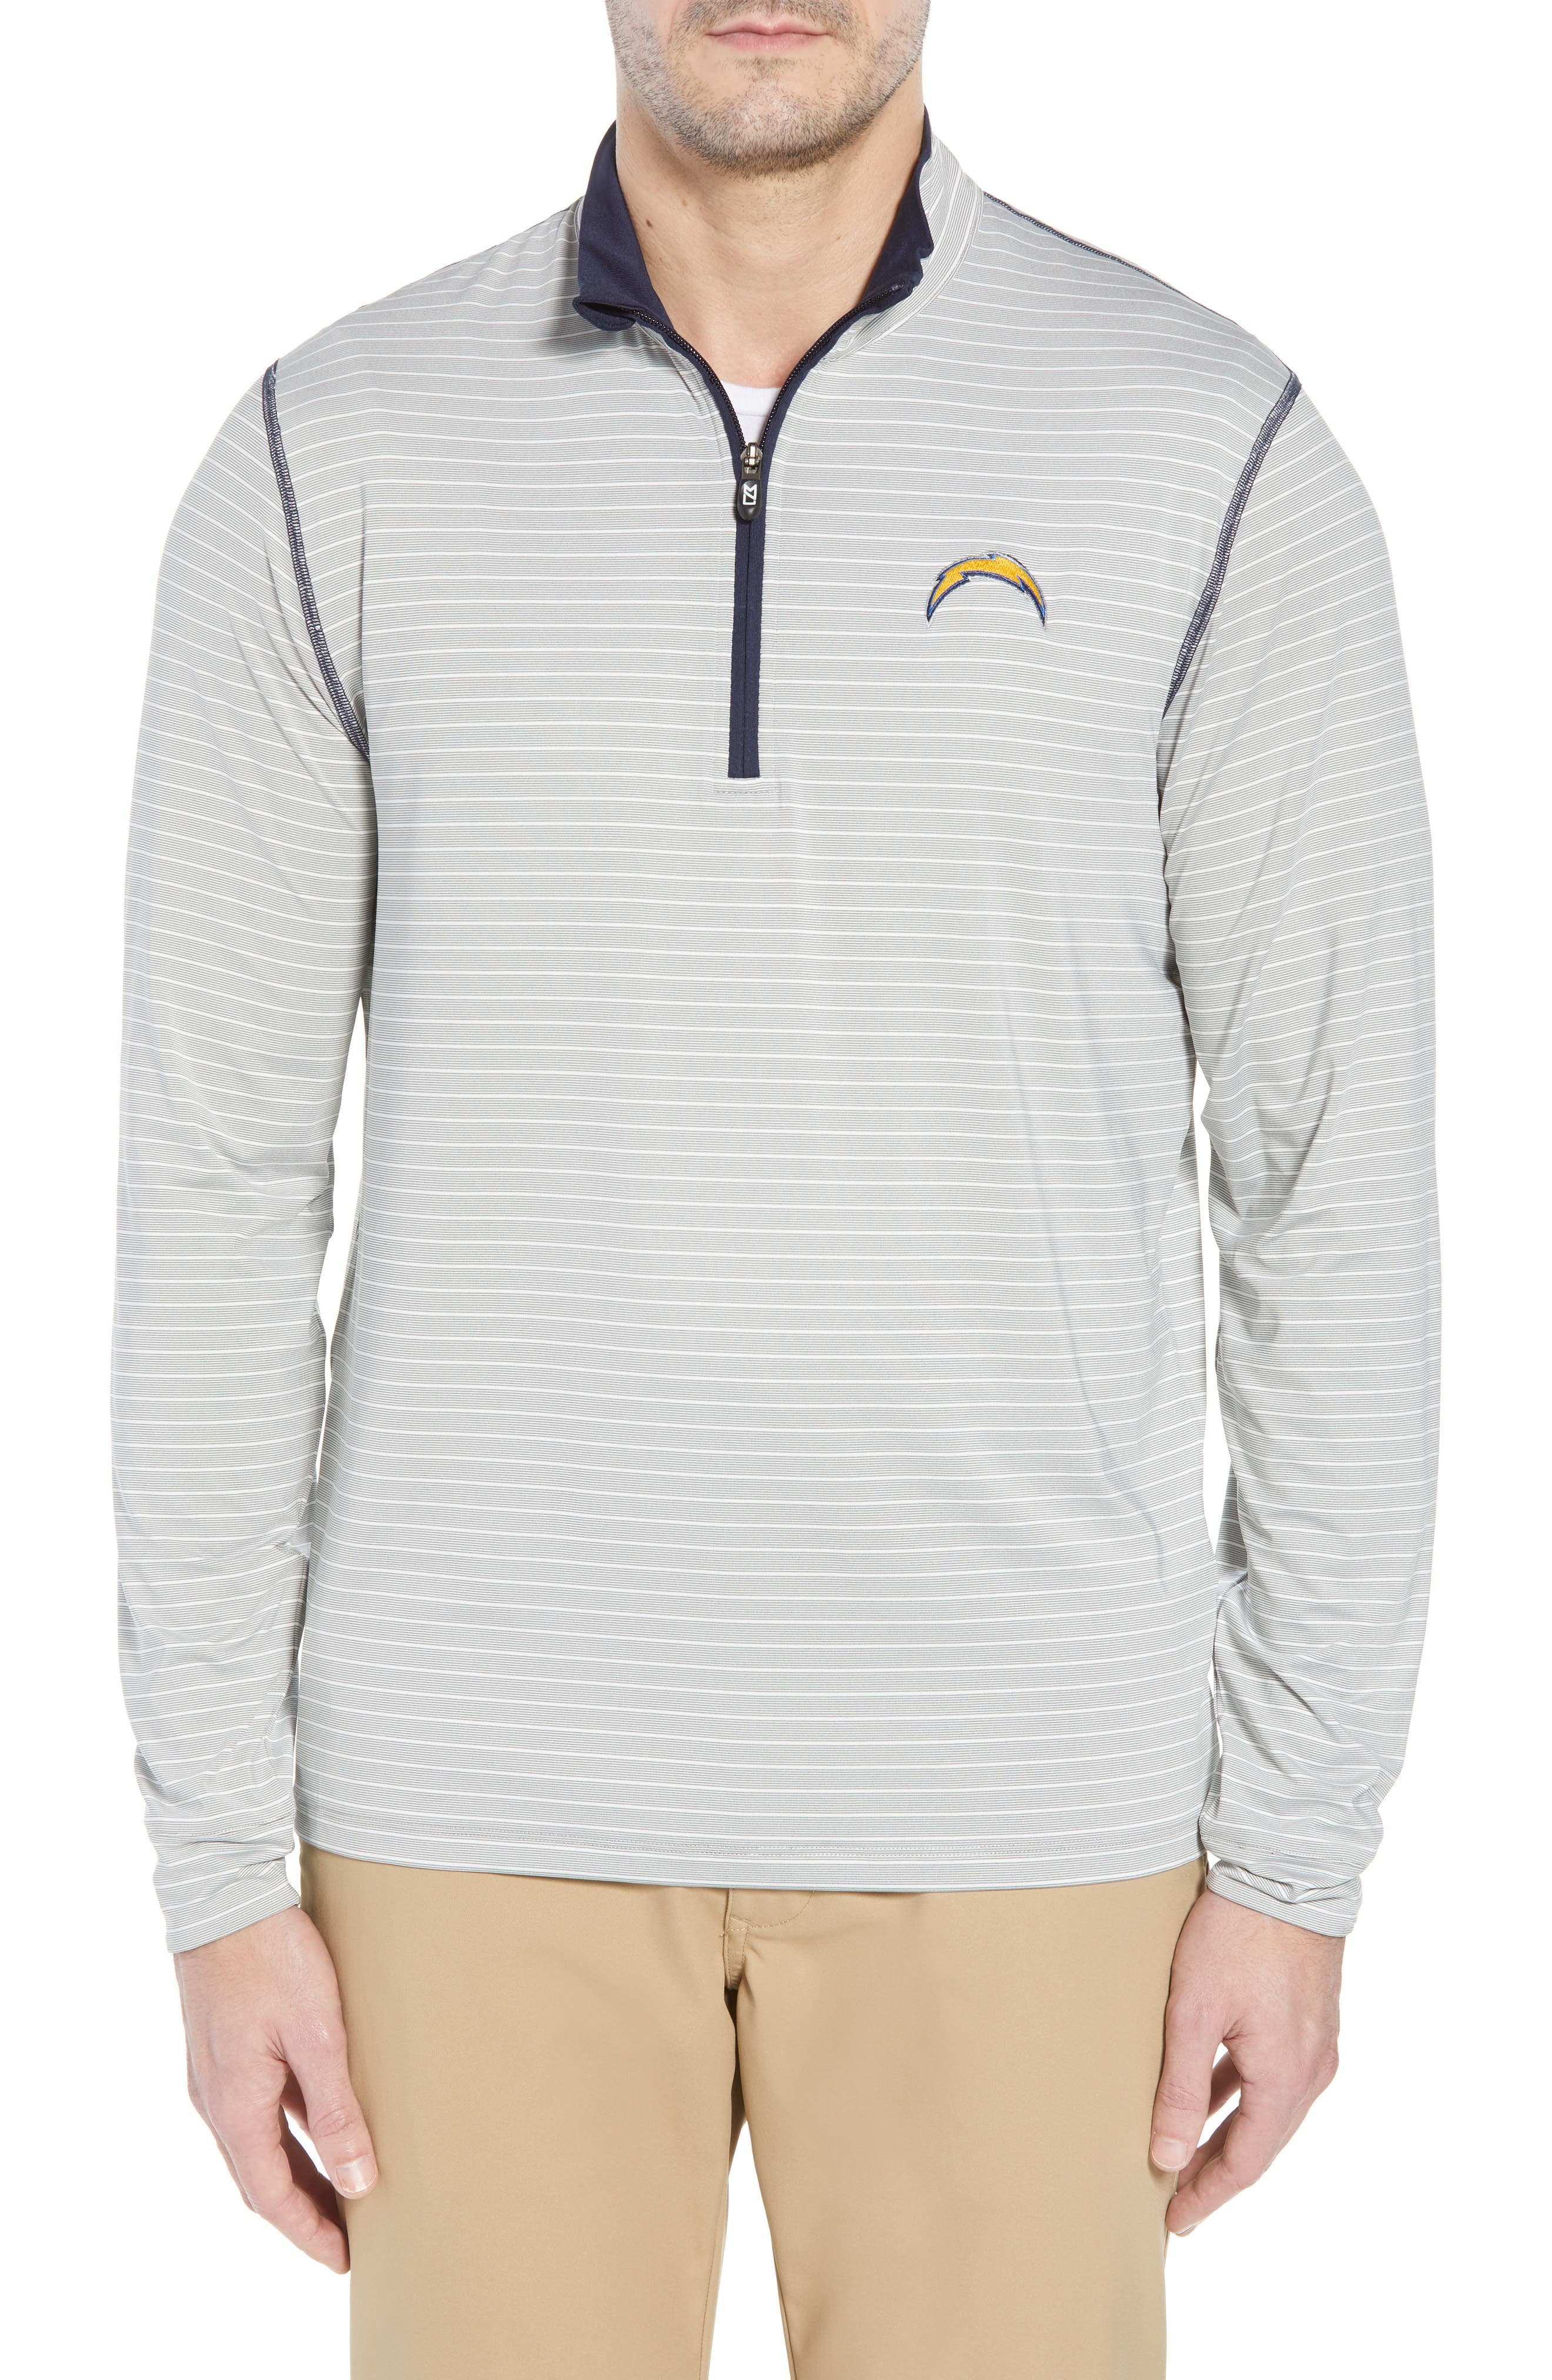 Meridian - Los Angeles Chargers Regular Fit Half Zip Pullover,                             Main thumbnail 1, color,                             NAVY